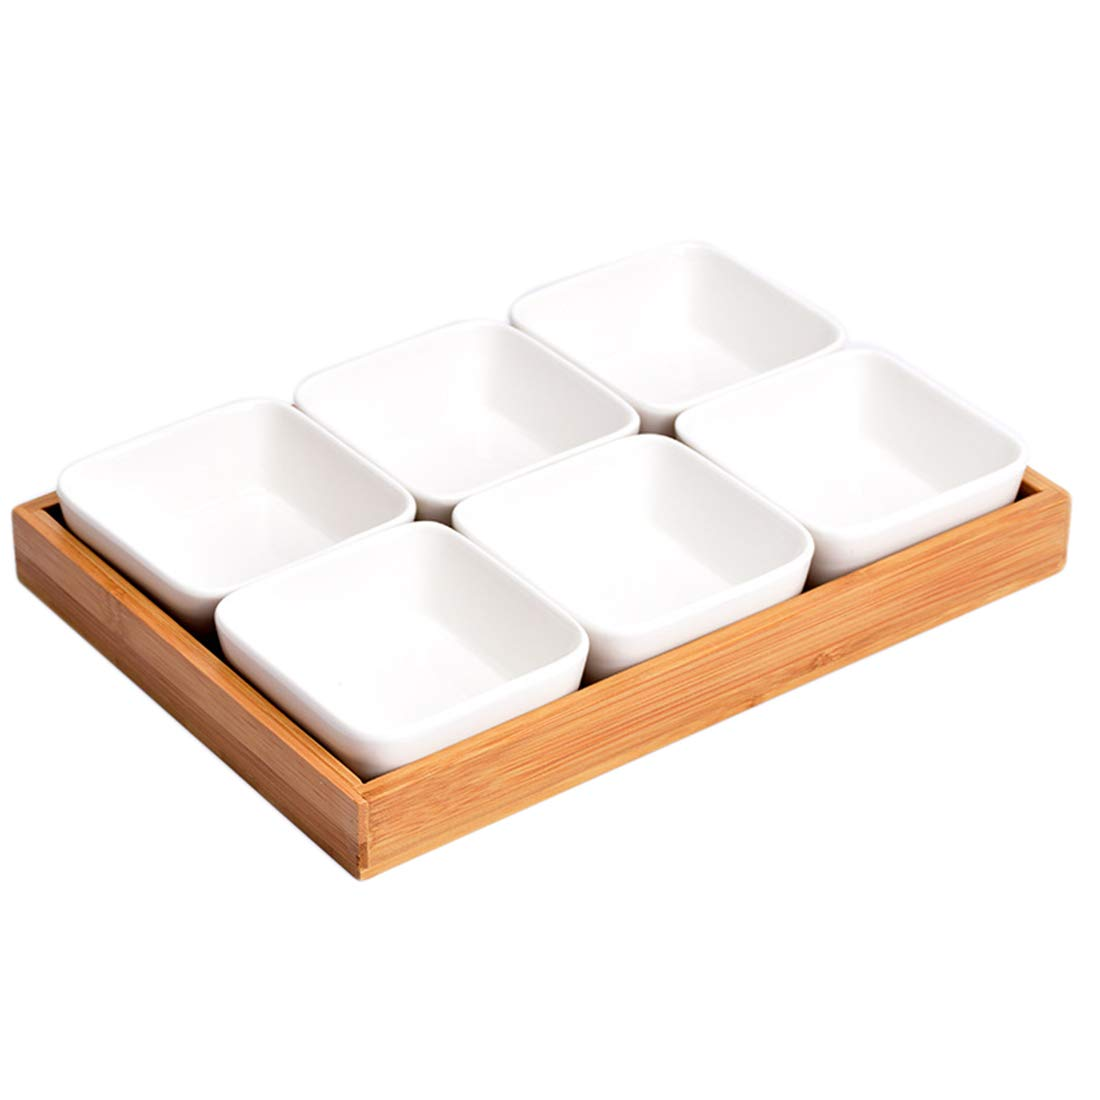 HMANE Ceramic Sauce Dish Divided Dipping Bowl Tray Condiment Dish Storage Tray for Kitchen Spices Vinegar Nuts Sushi Vinegar - (Six Compartments)